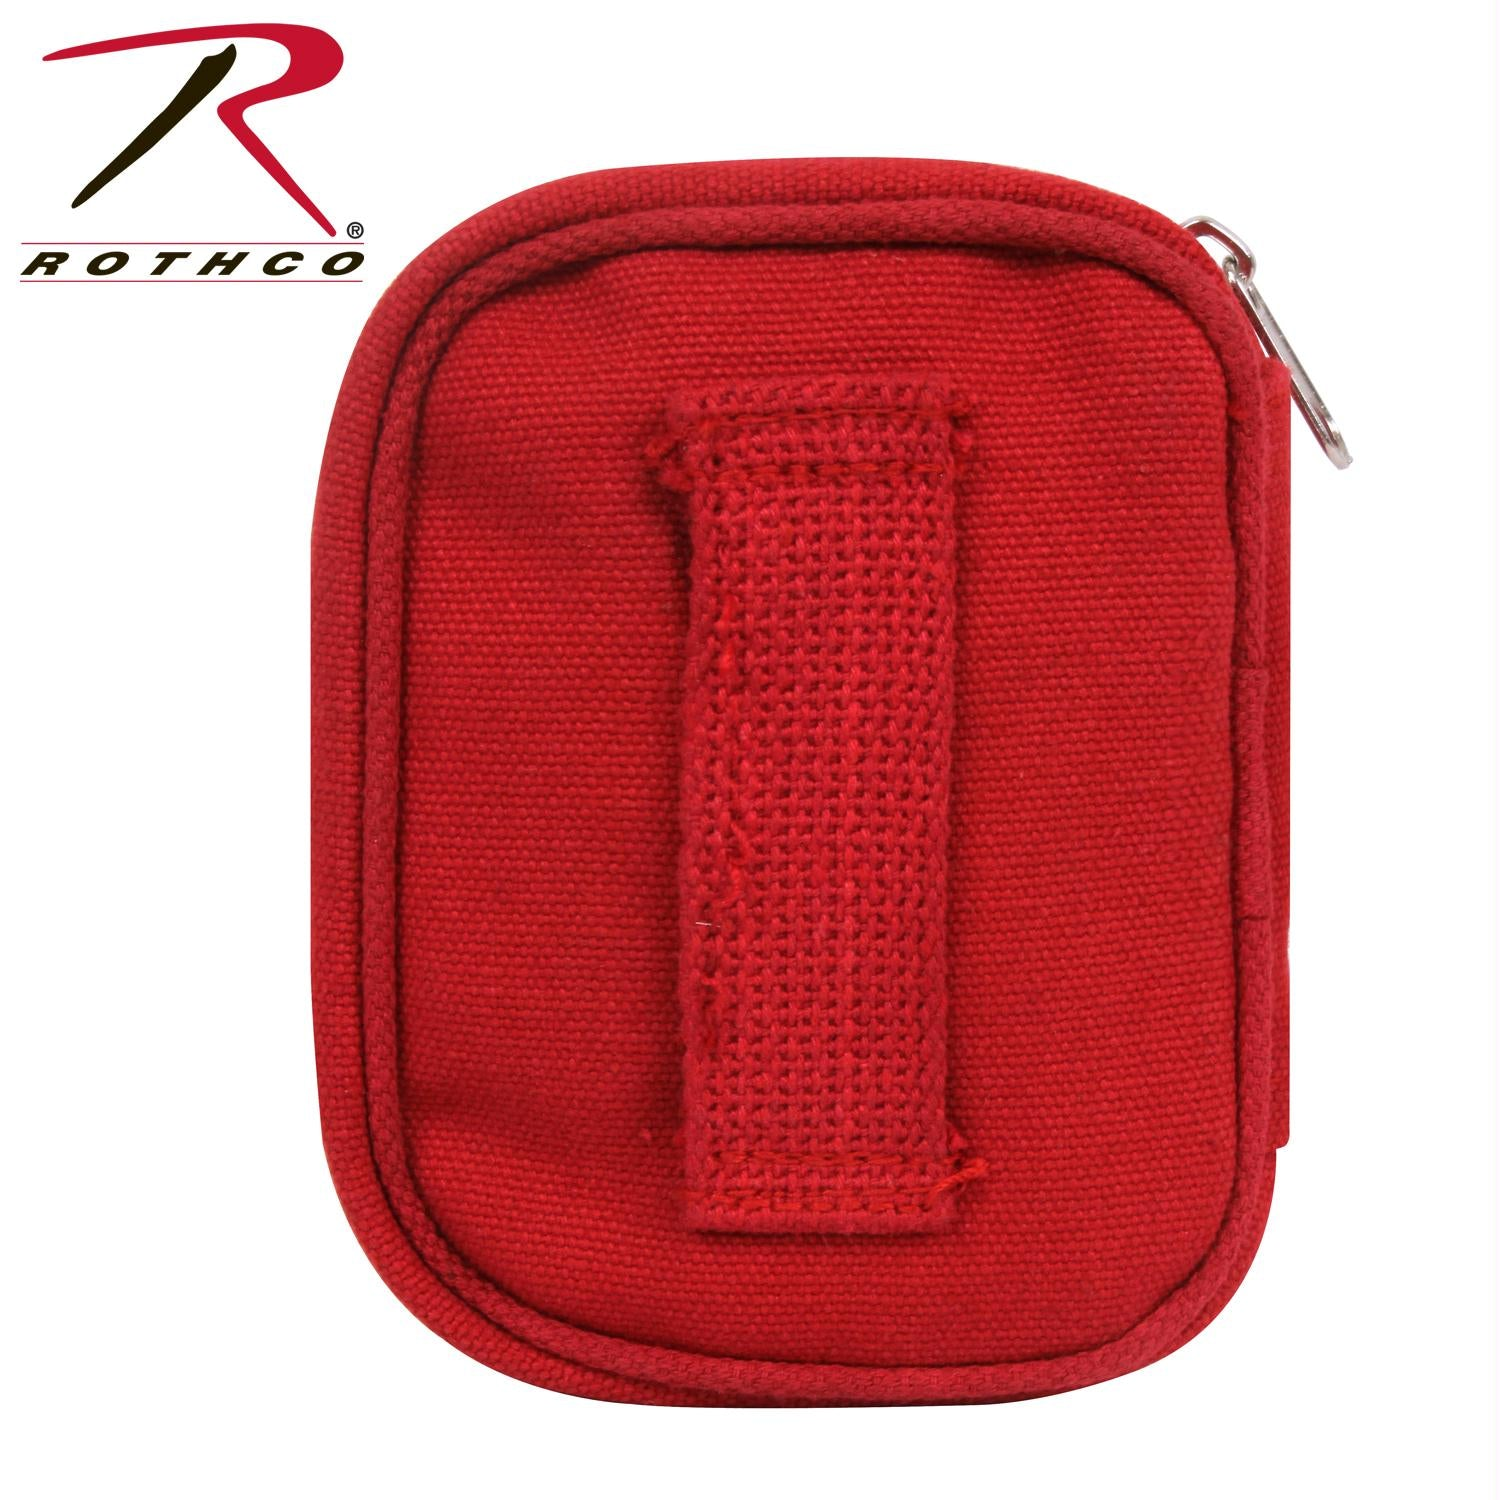 Rothco Military Zipper First Aid Kit Pouch